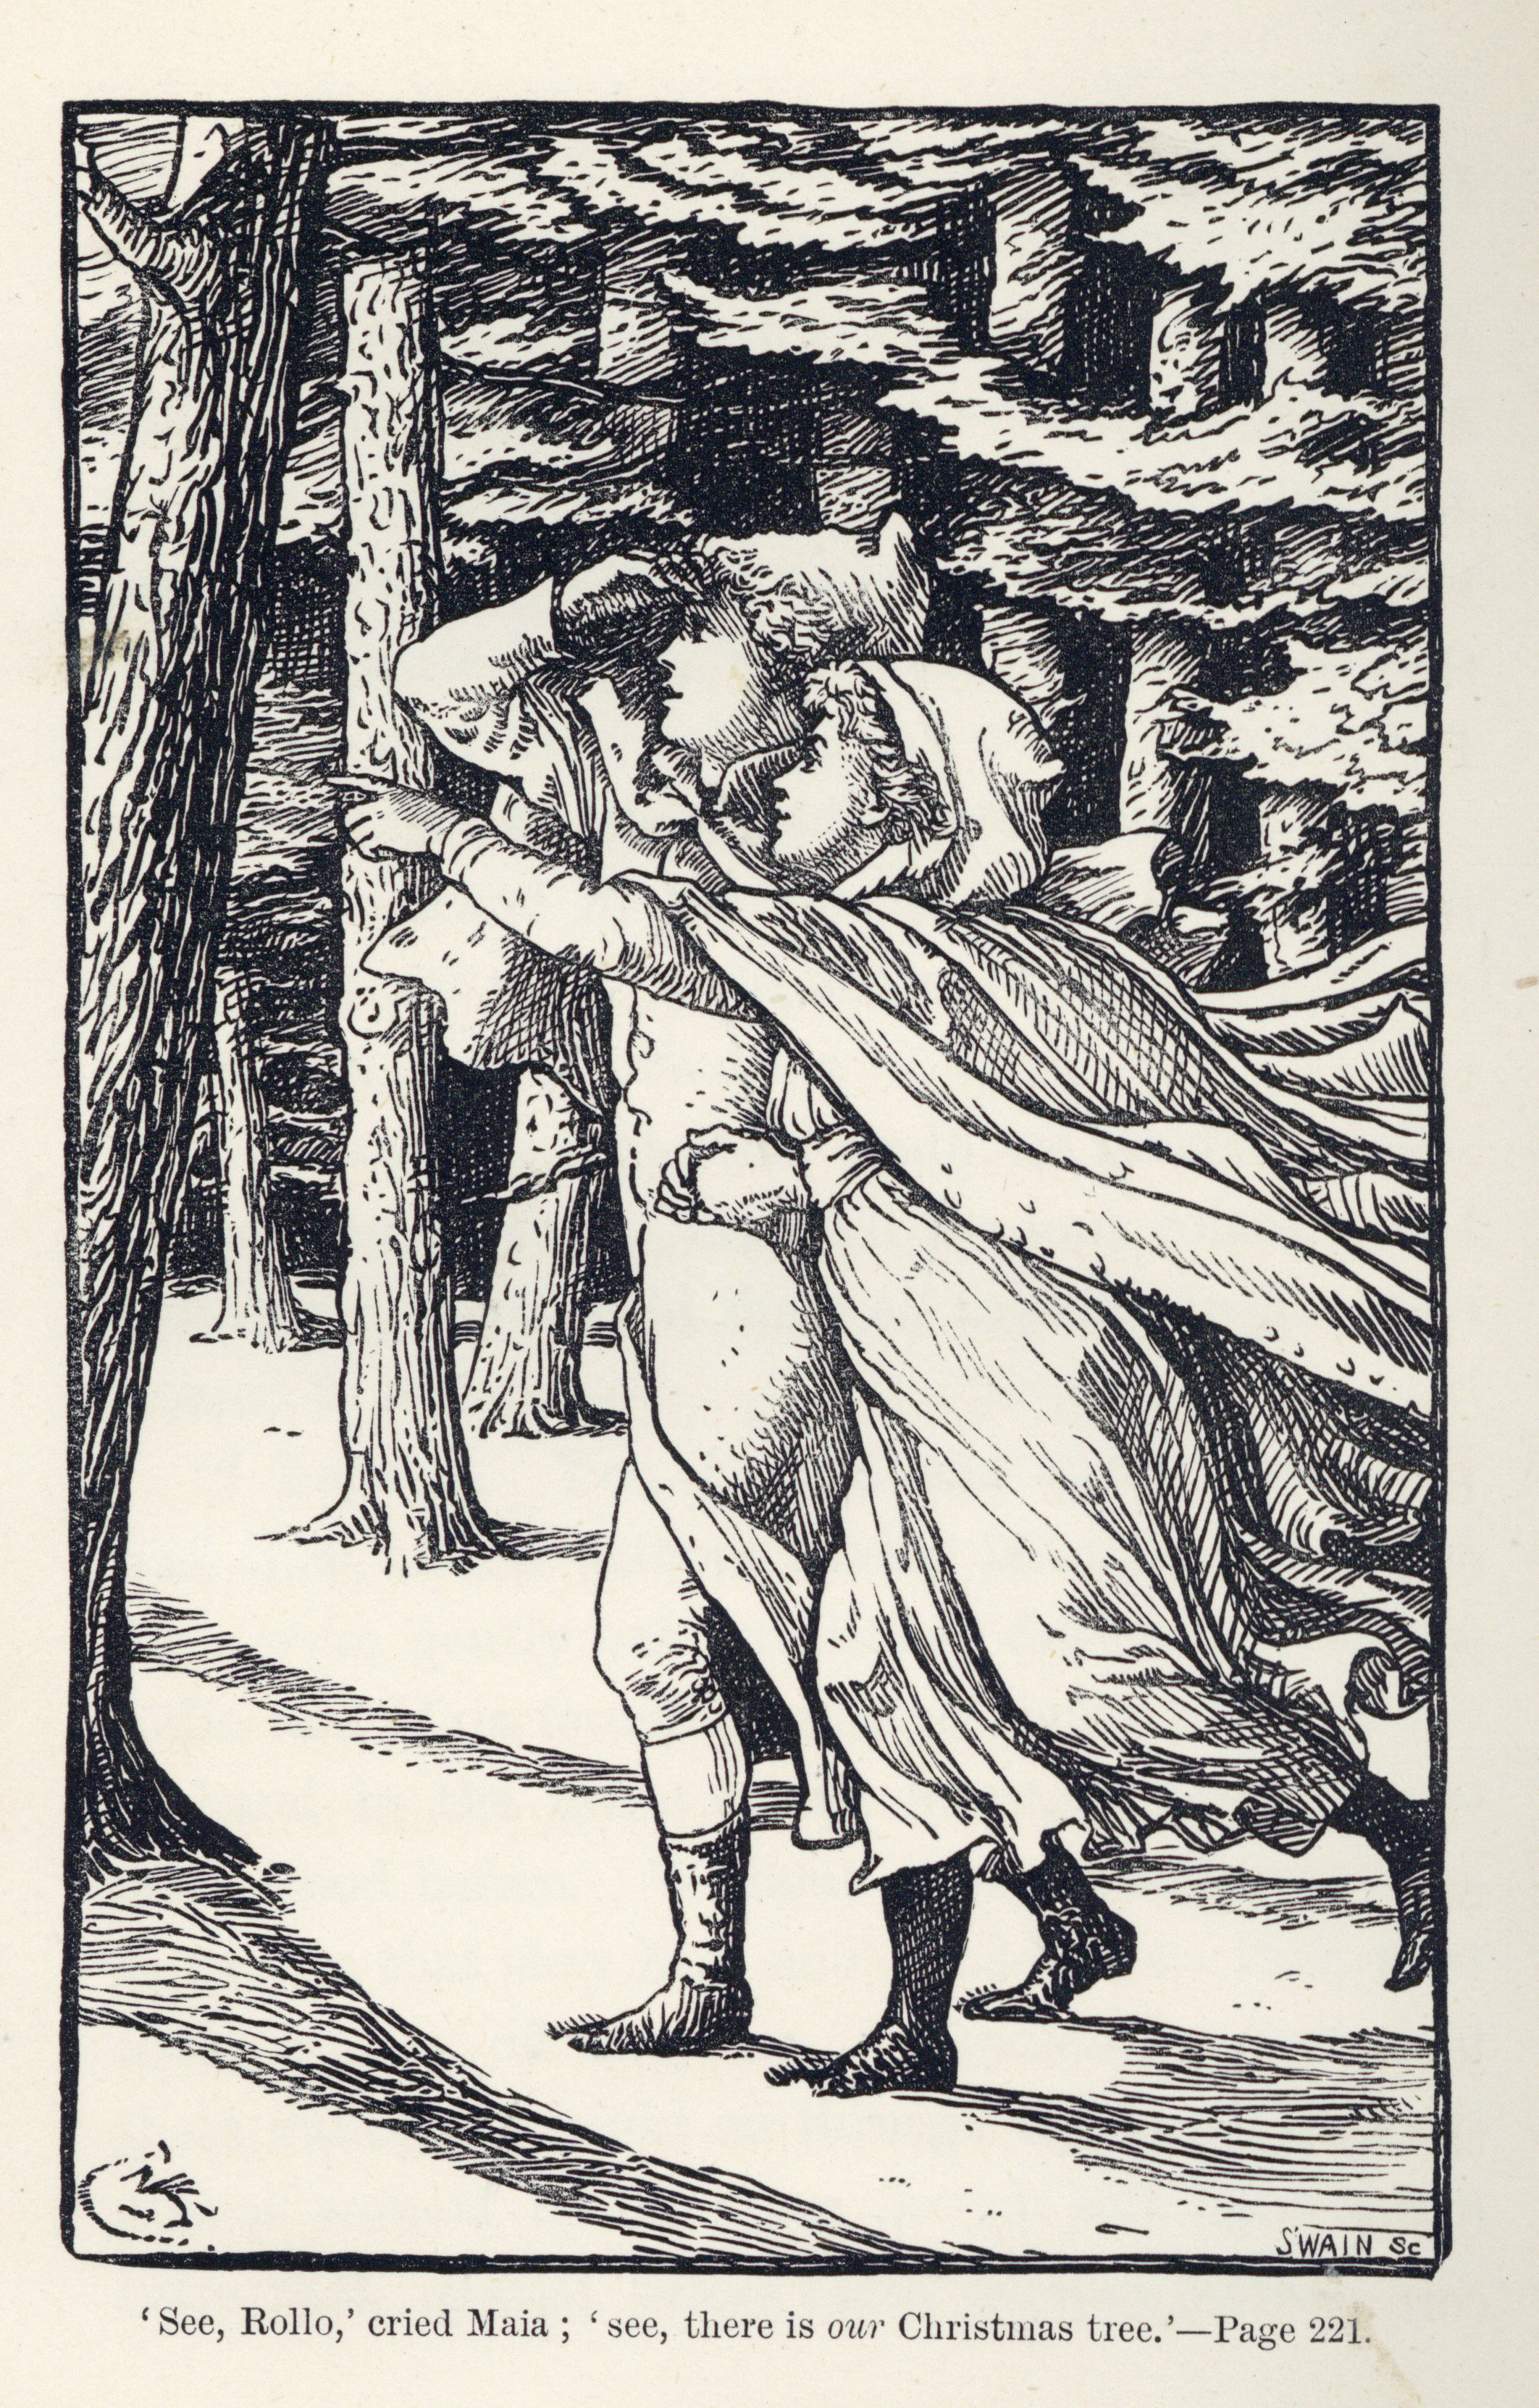 Illustration from 'Christmas Tree Land'